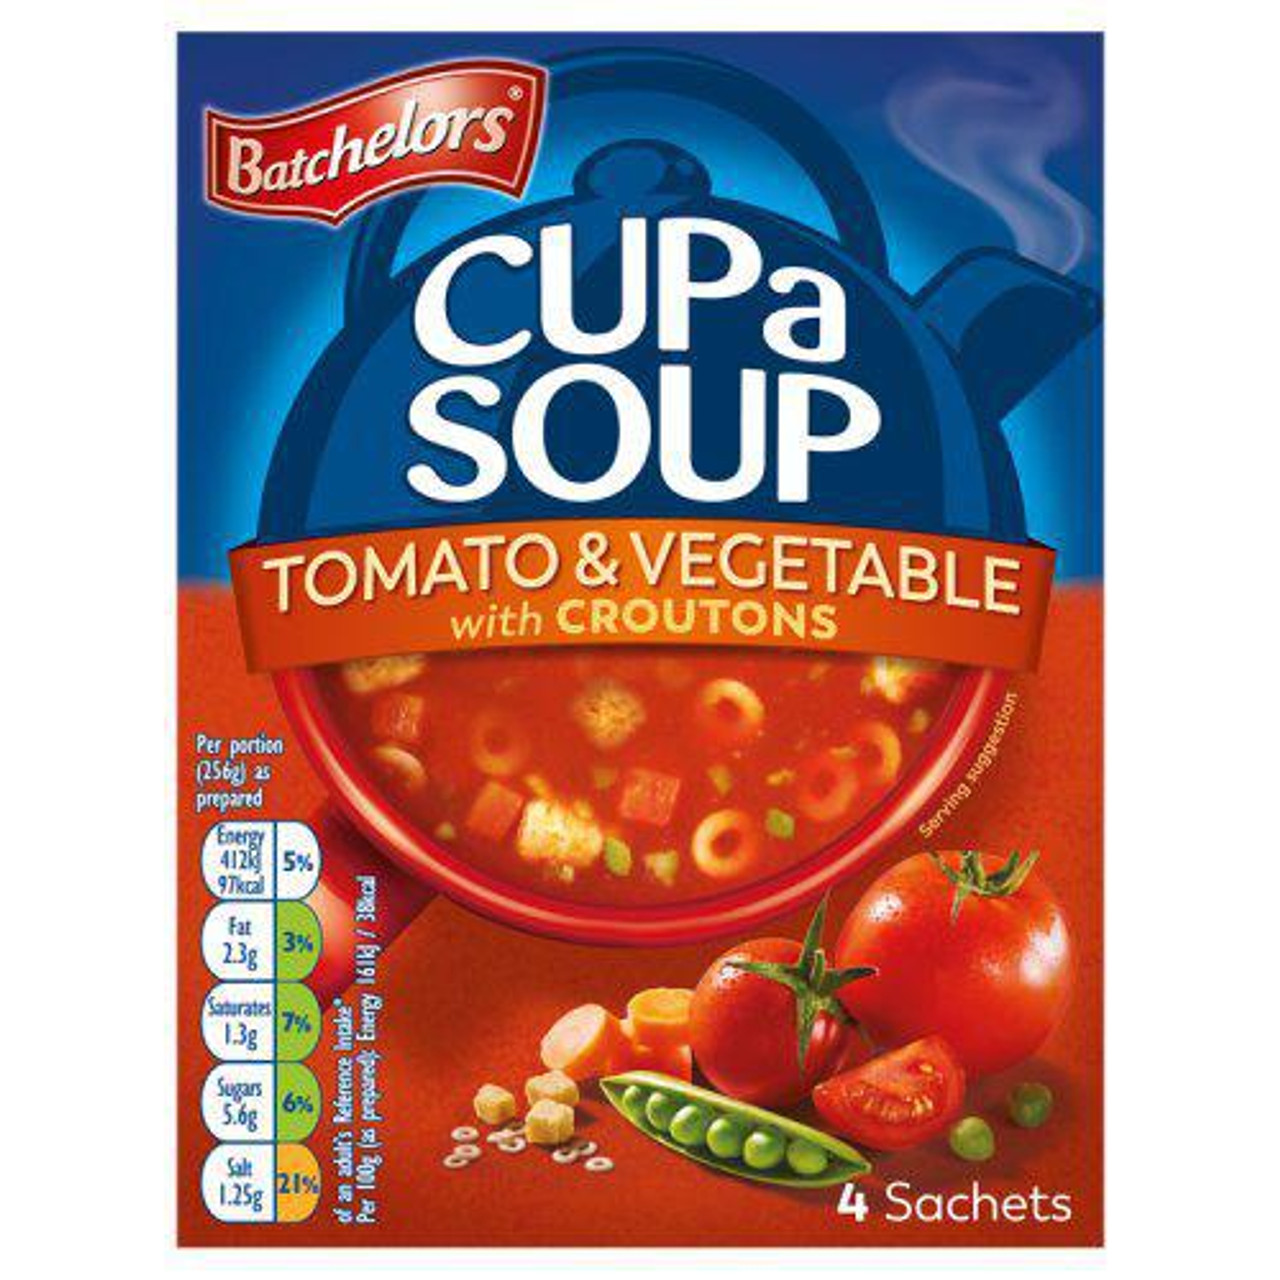 Batchelors Cup-A-Soup - Tomato & Vegetable, 4pk